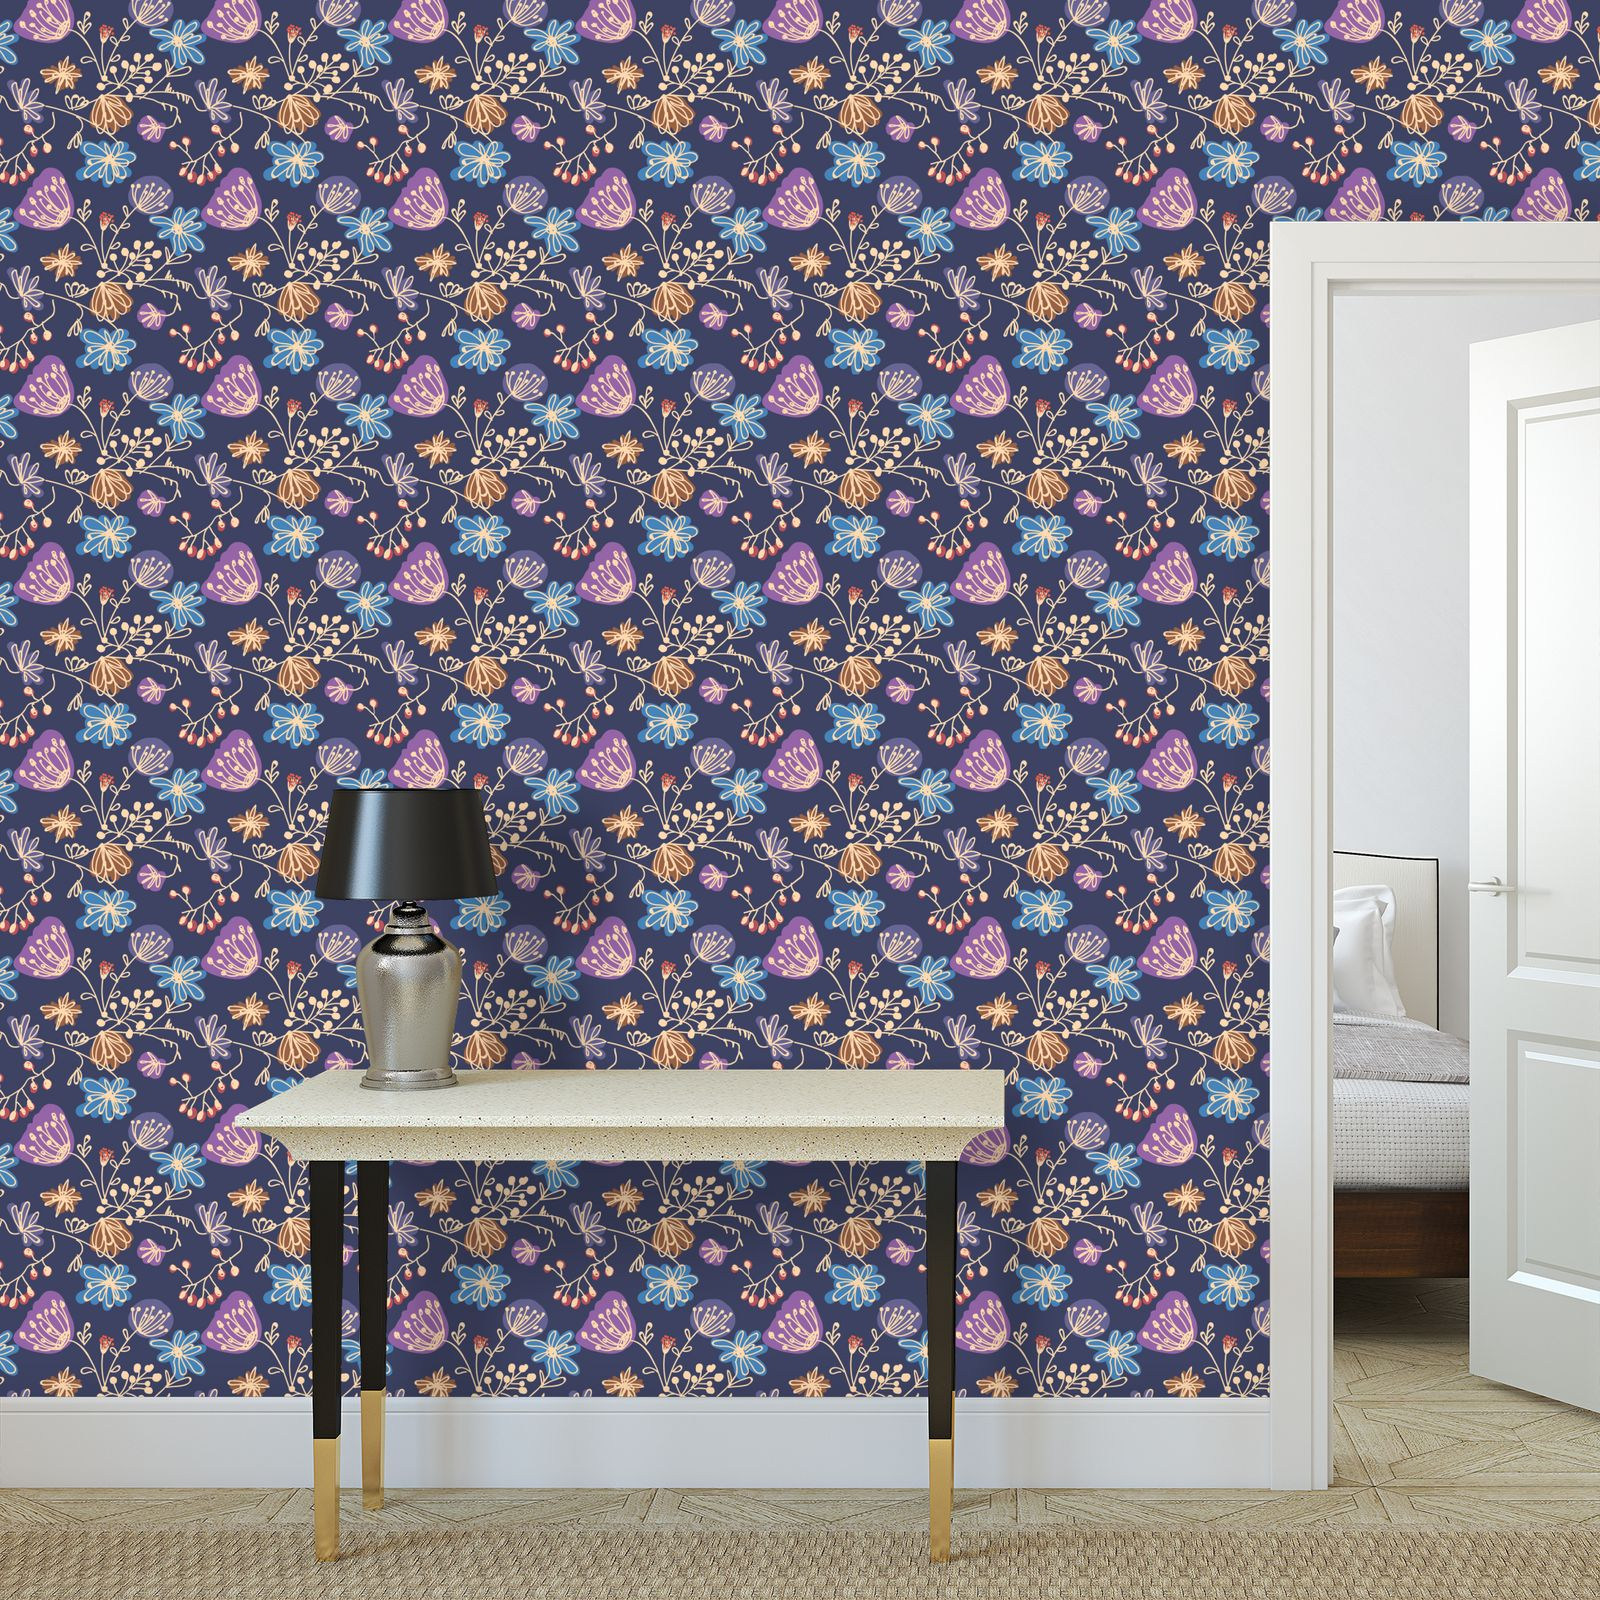 Night flowers - Wallpaper Rolls - floral, blue, blooming plants, navy, natural, hand drawing gift